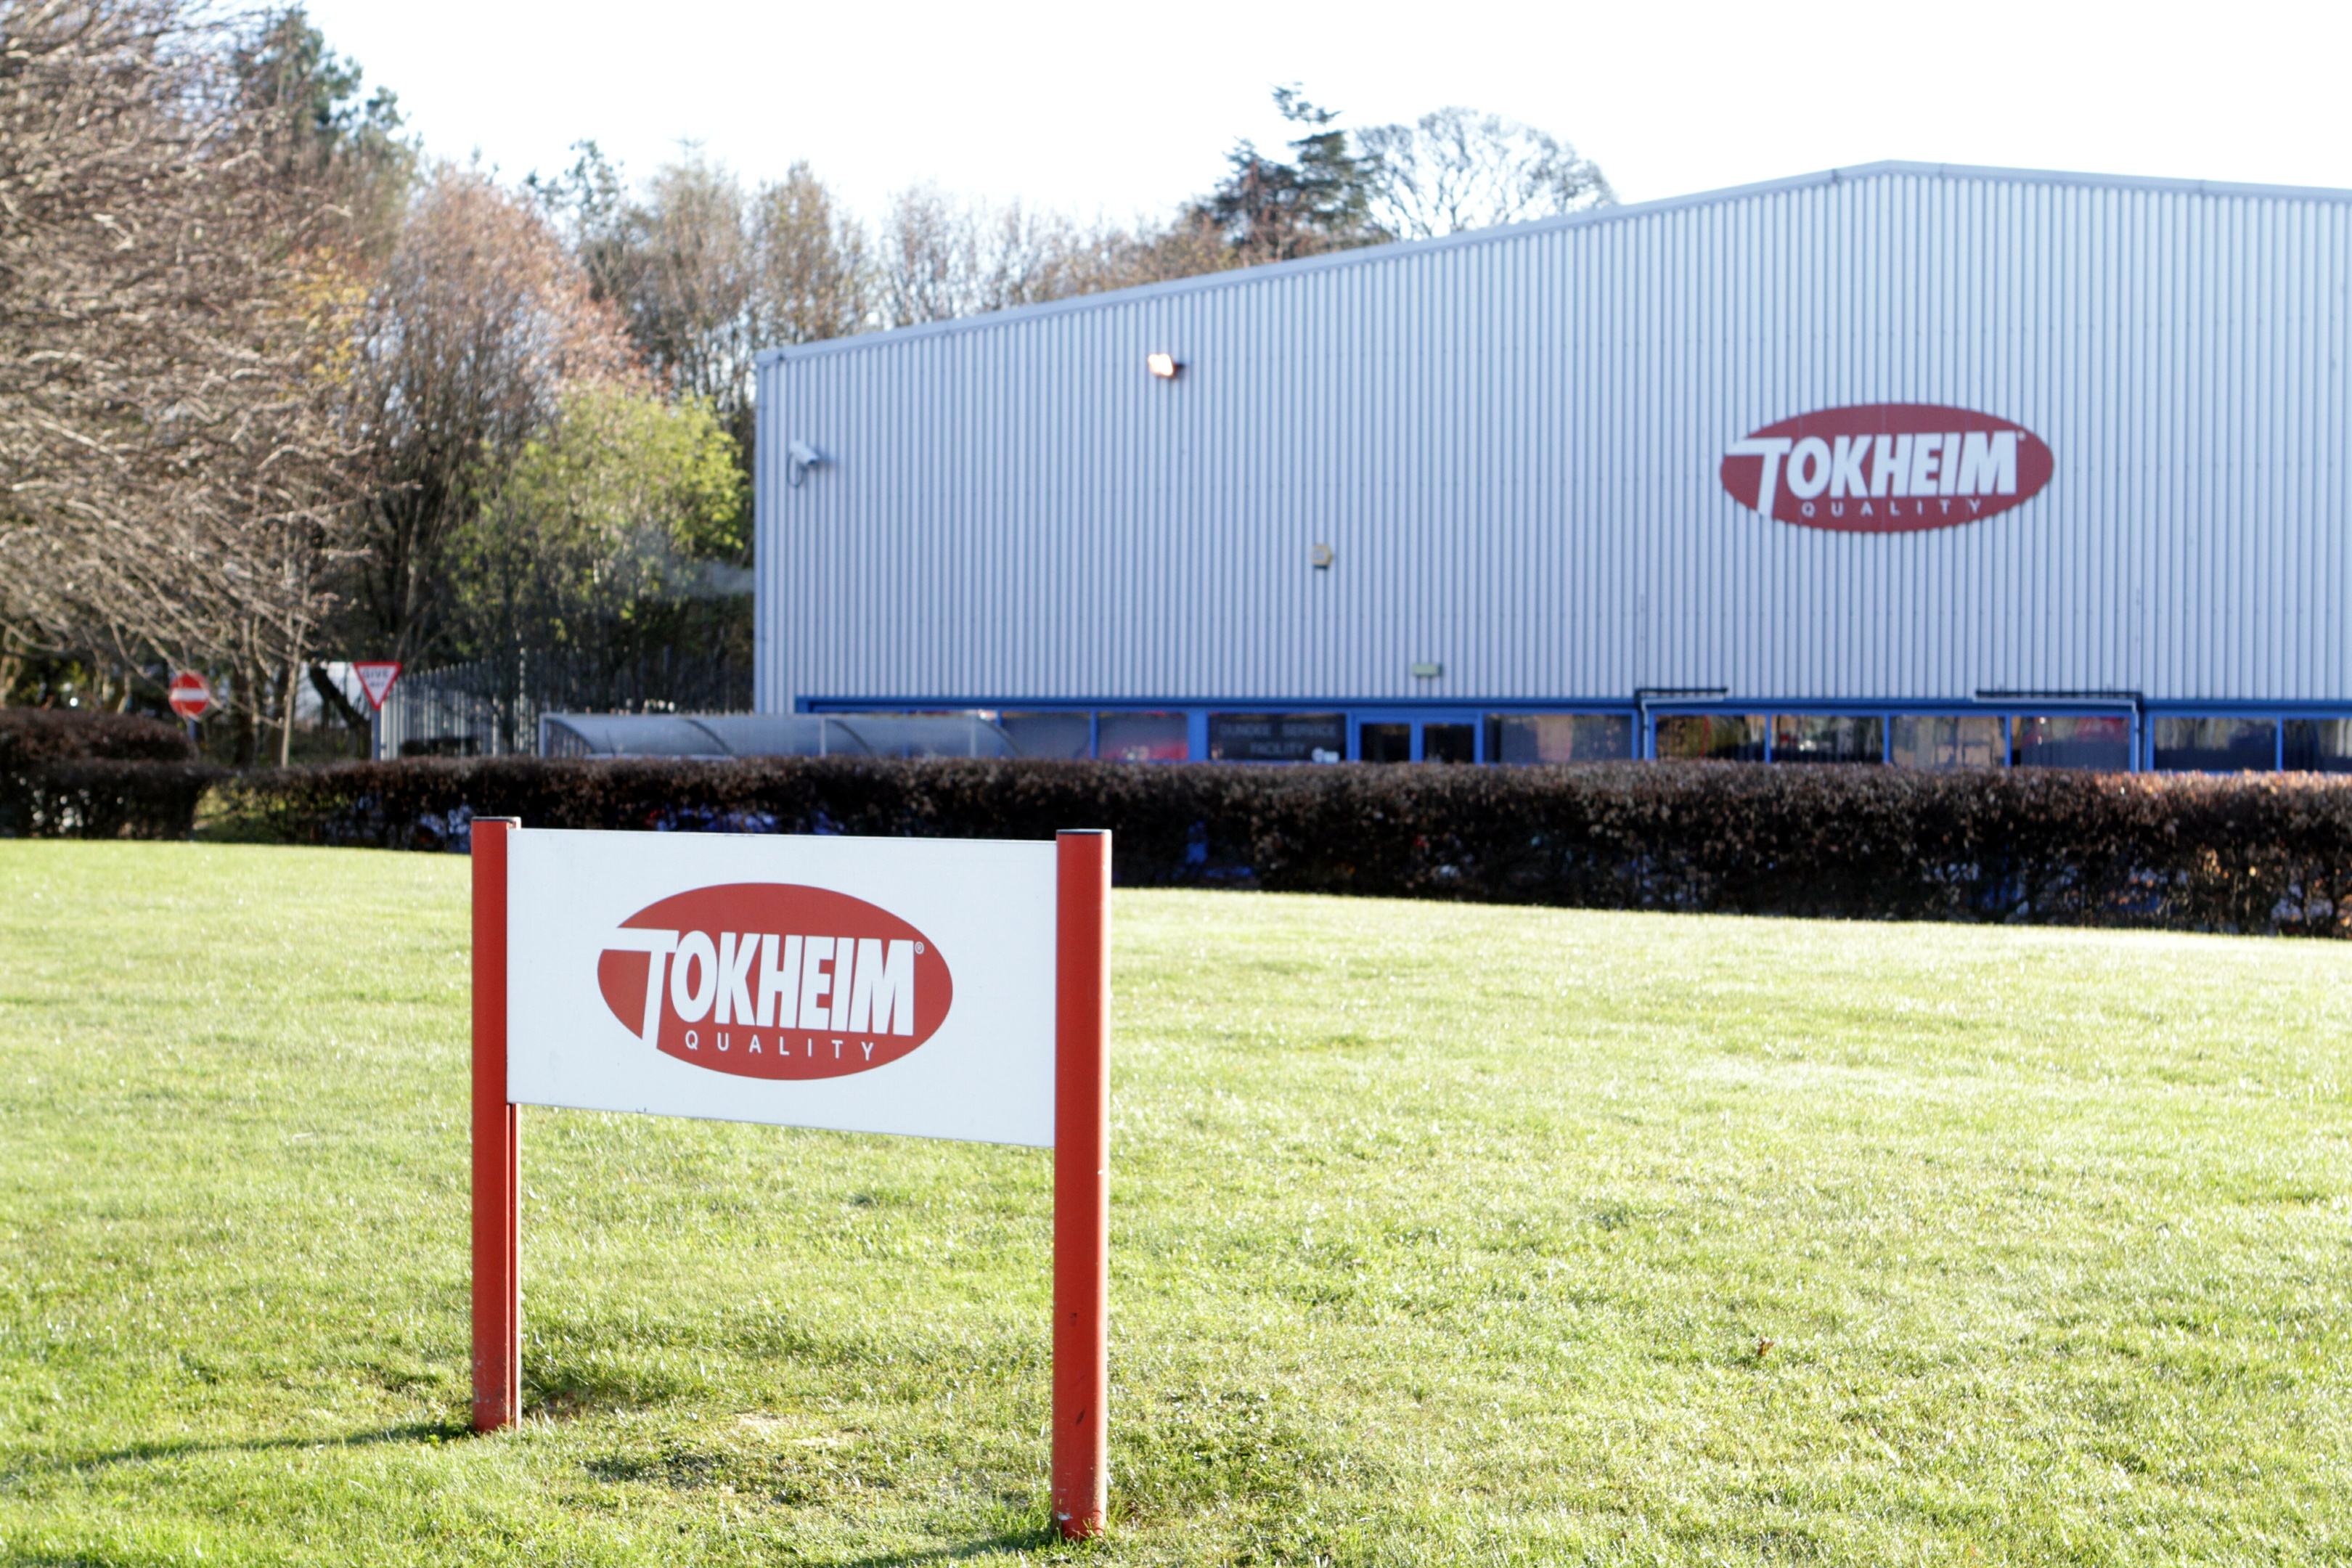 The Tokheim plant in Dundee.